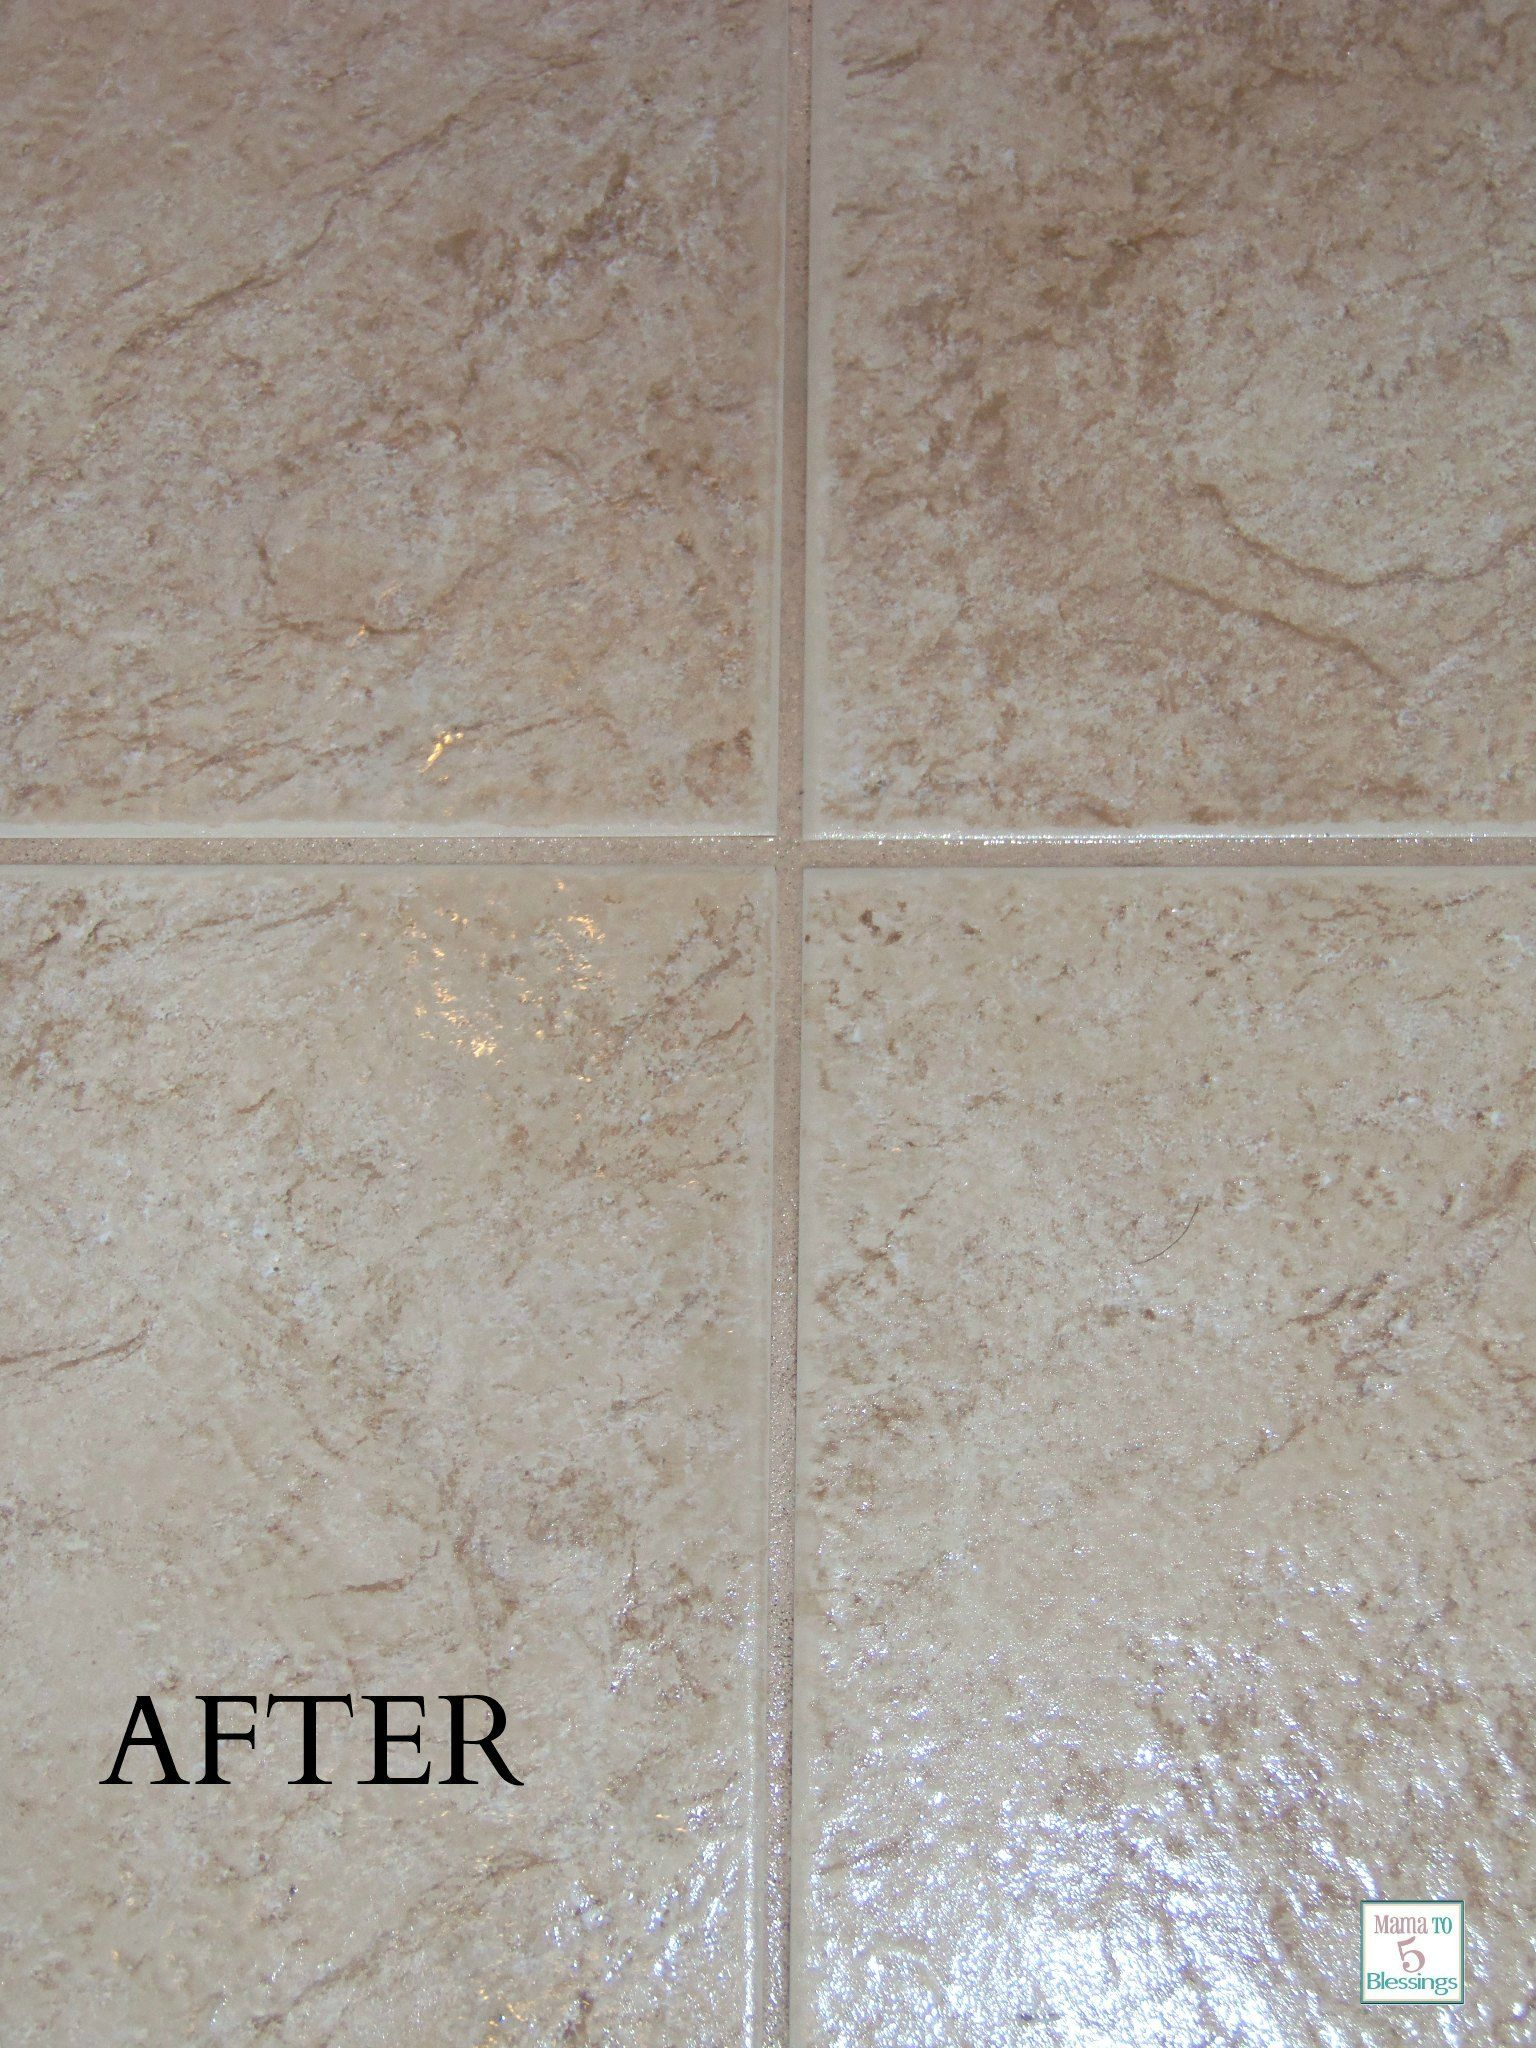 Grout cleaner tile flooring natural grout cleaner natural cleaning tile grout the natural way dailygadgetfo Images